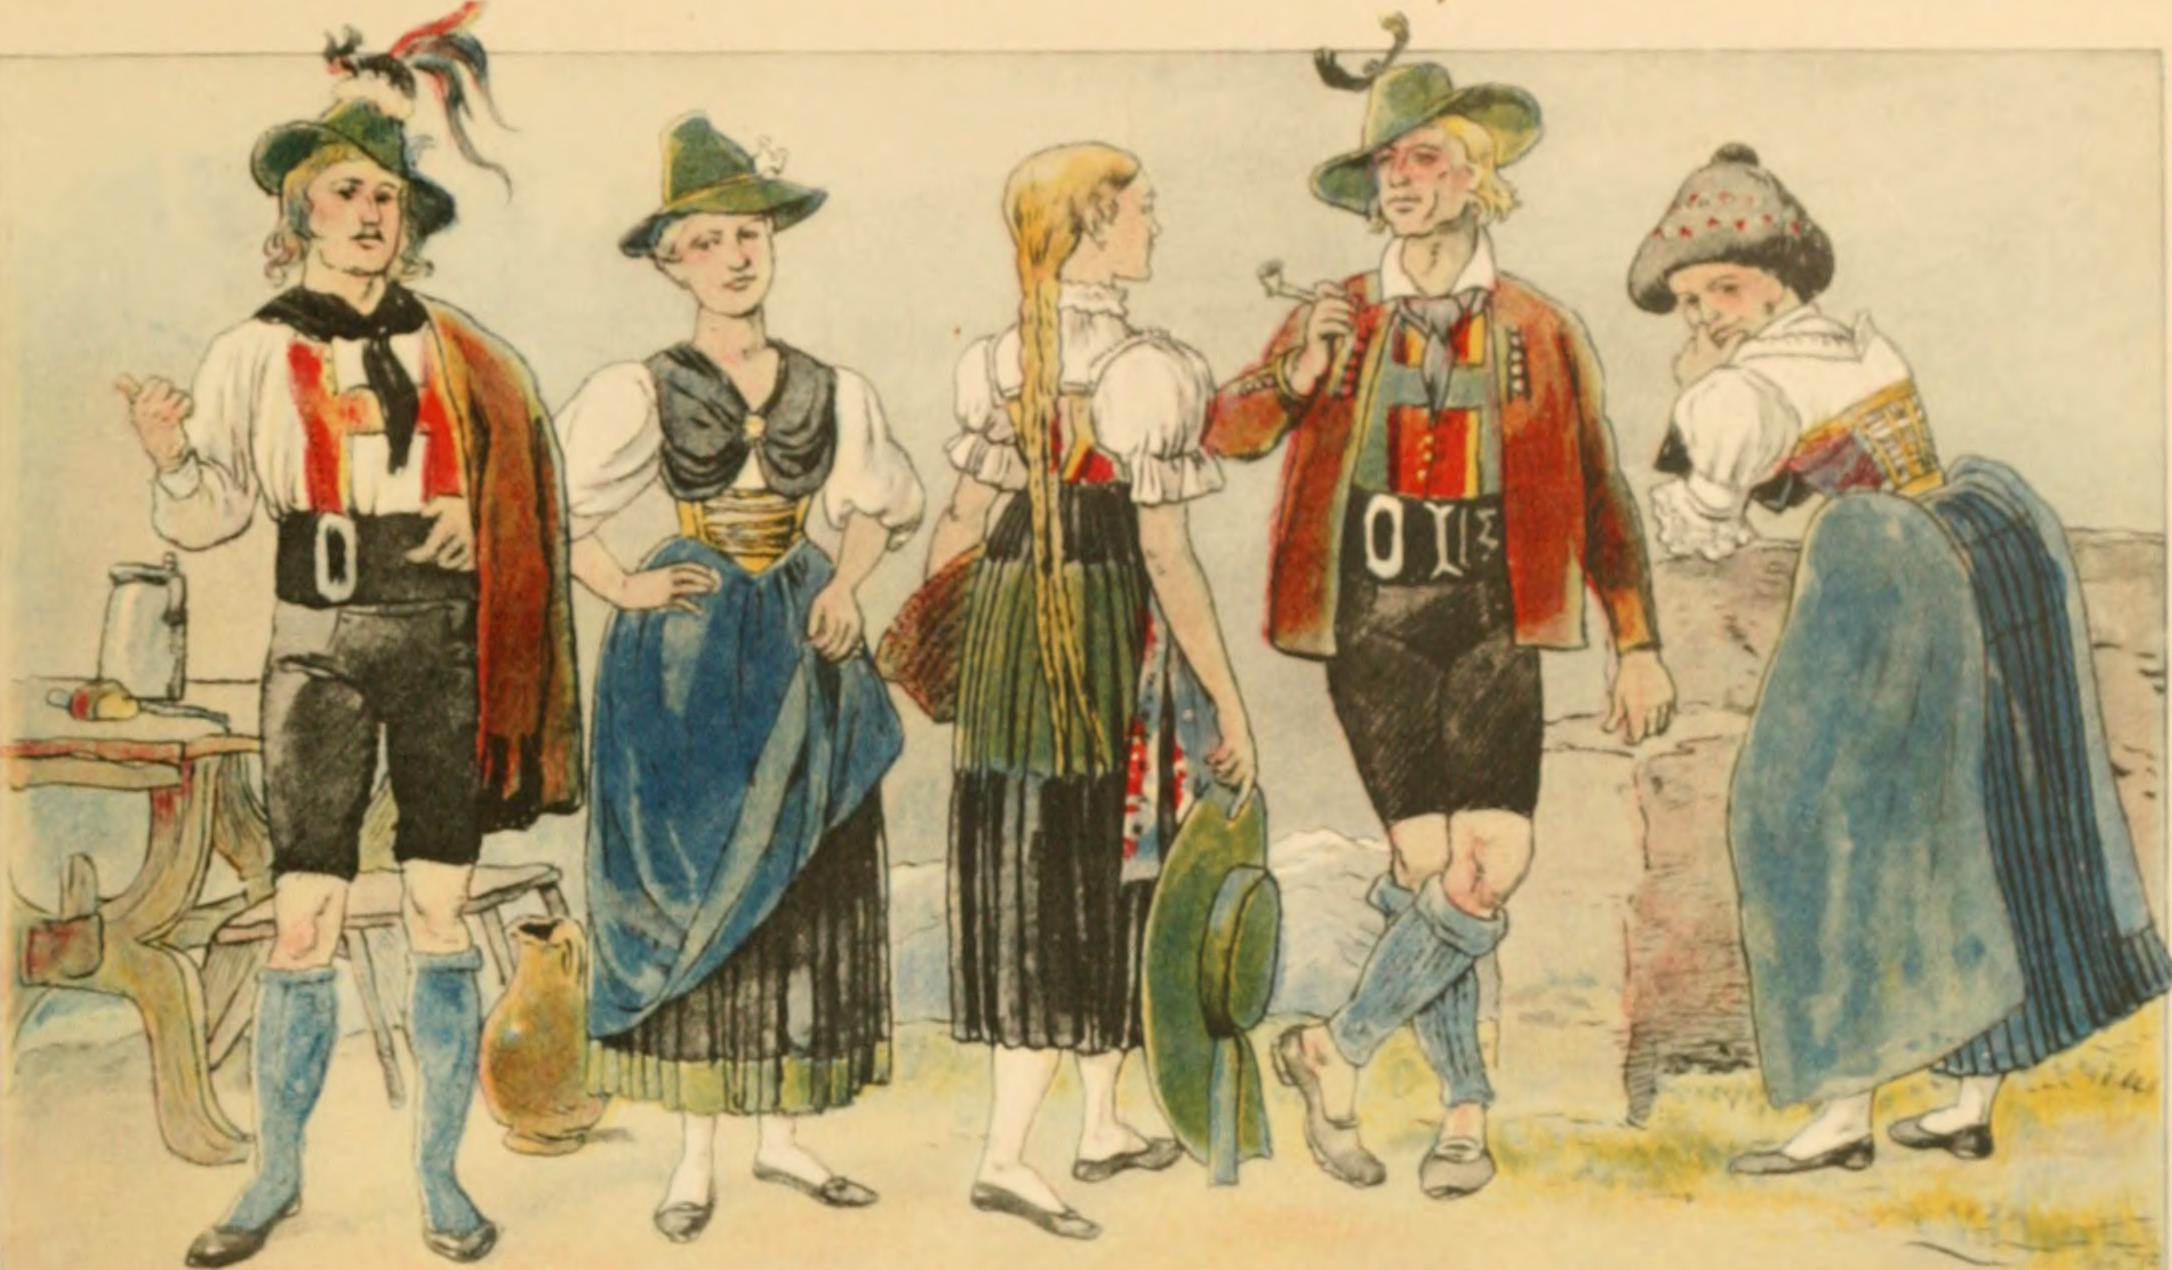 Illustration from the book Geschichte des Kostüms (1905), showing some central European traditional costumes.